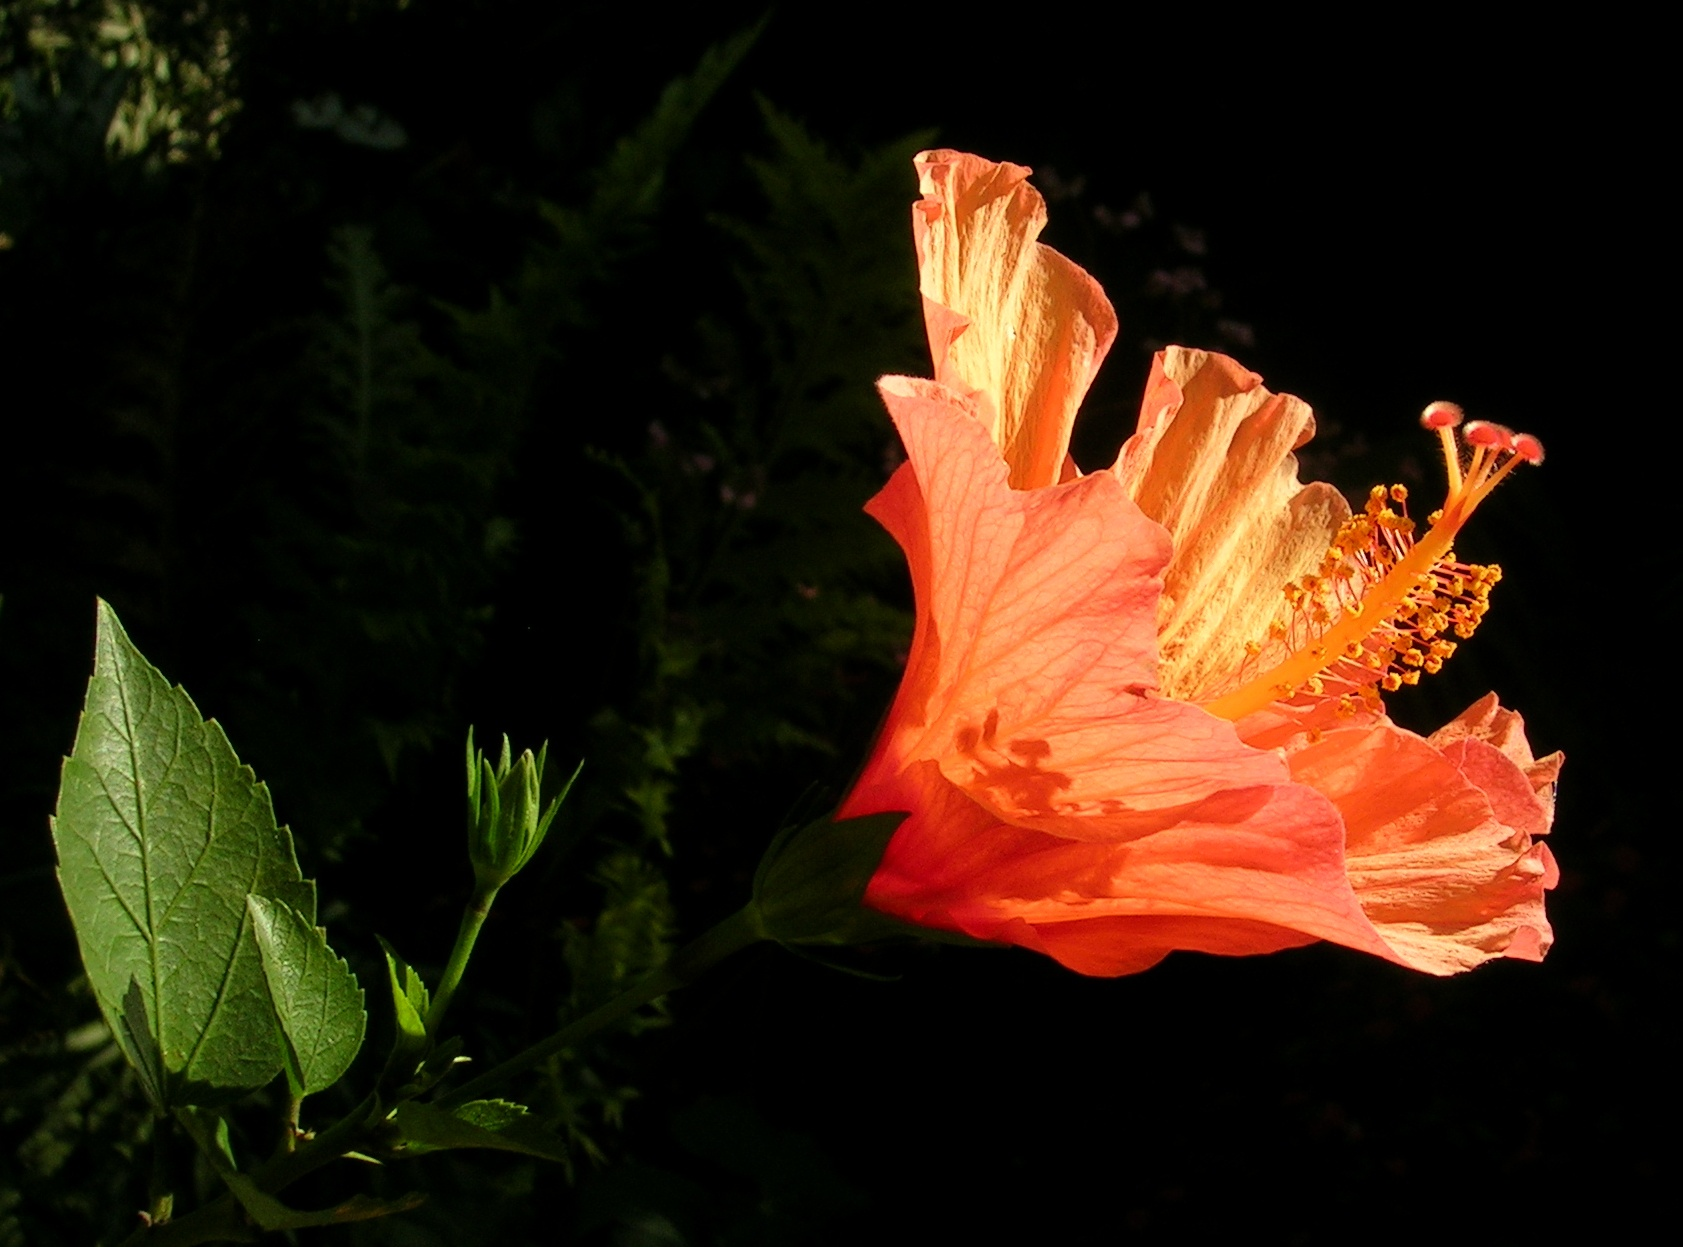 Filehibiscus flower partsg wikimedia commons filehibiscus flower partsg izmirmasajfo